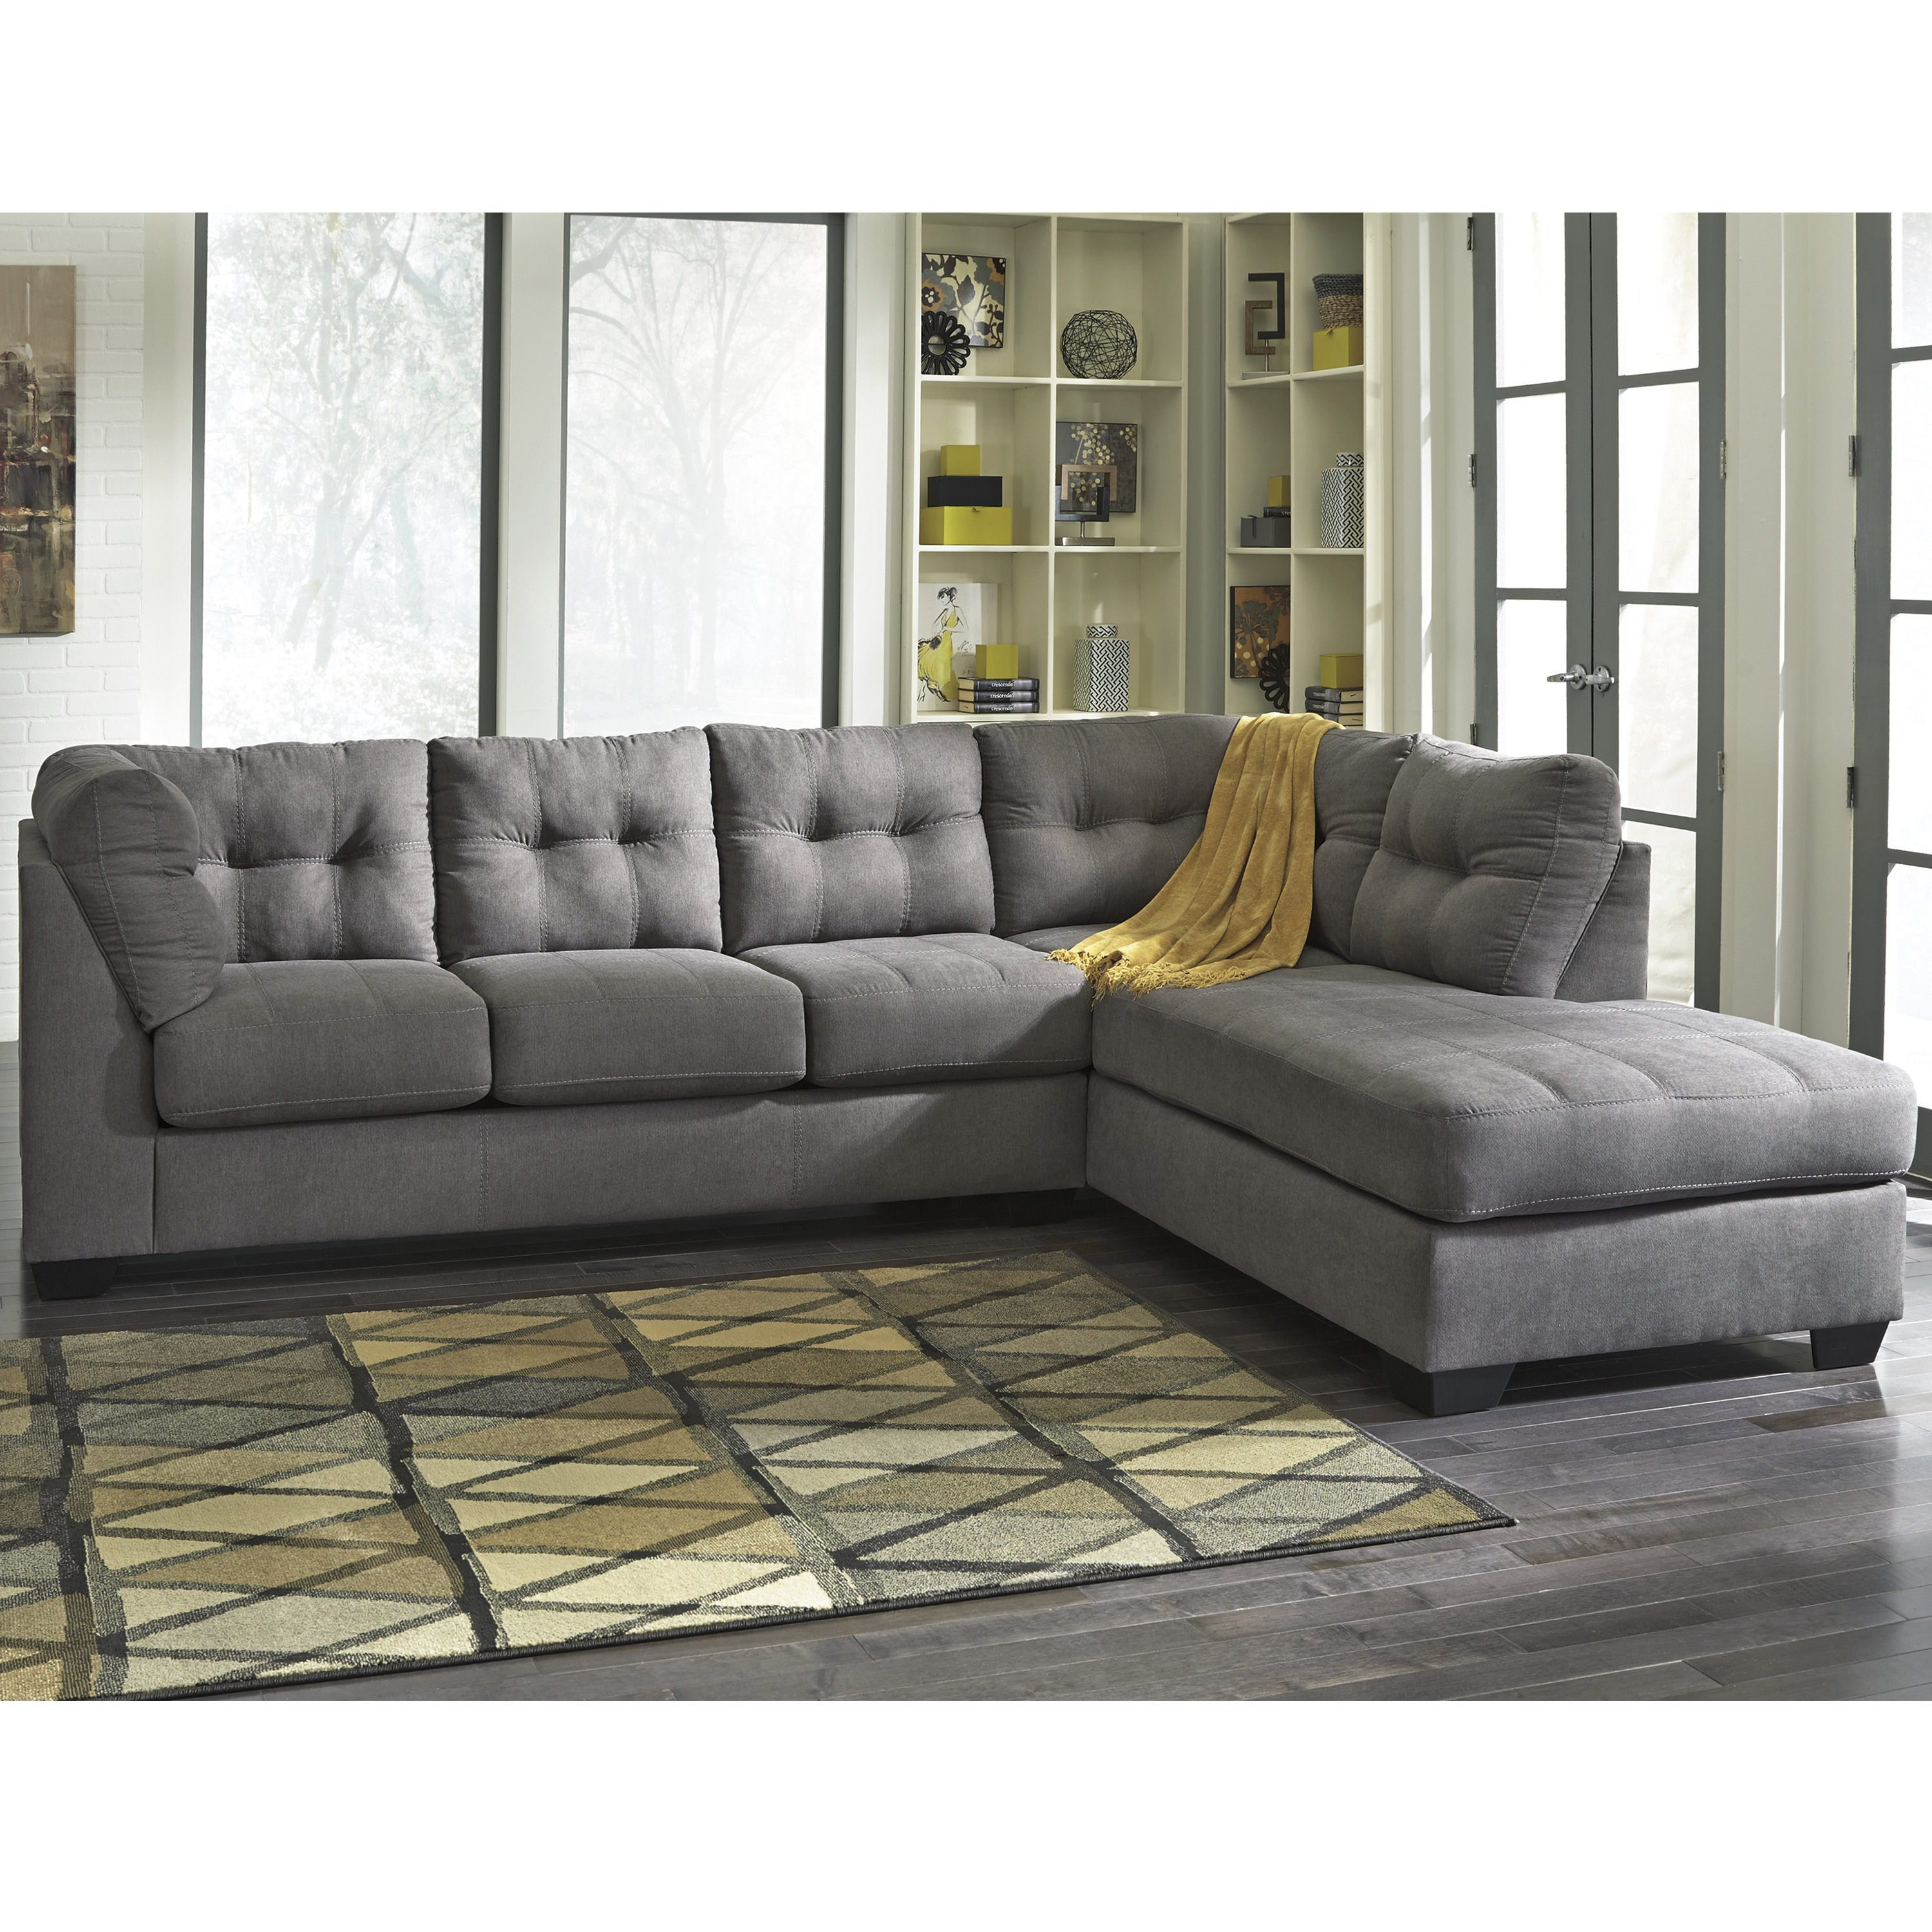 Shop Clay Alder Home Wells Microfiber Sectional With Left Side With Regard To Well Liked Alder 4 Piece Sectionals (View 16 of 20)